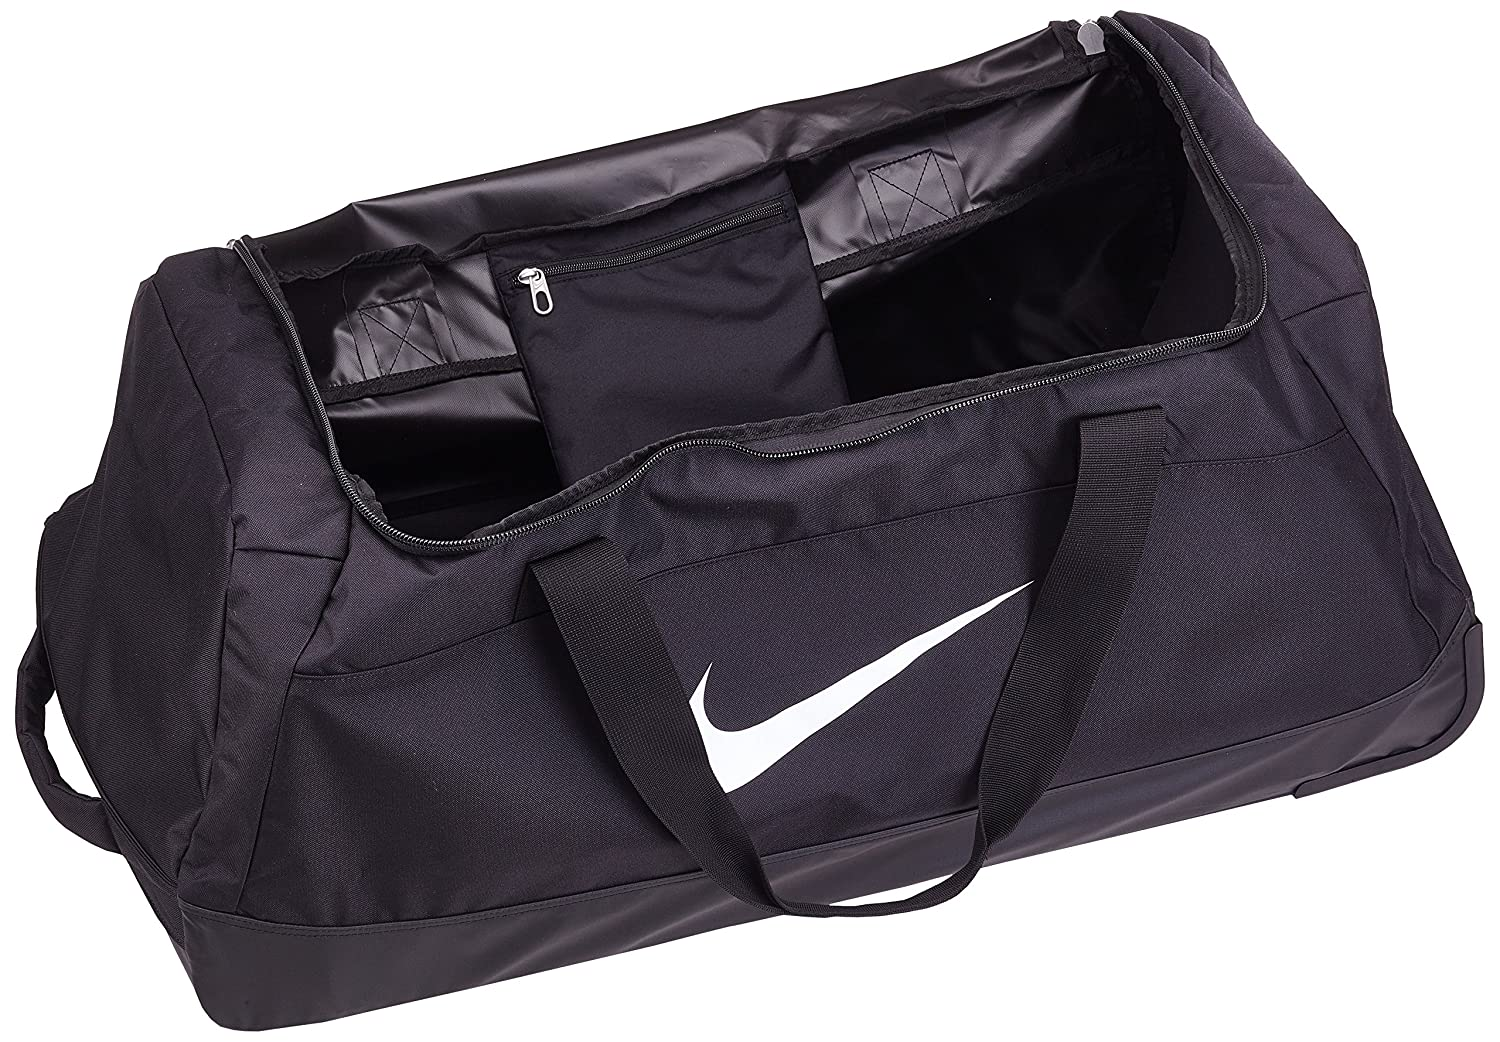 7105508ce8 Nike Club Team Swoosh Roller Bag 3.0 Sport Duffel